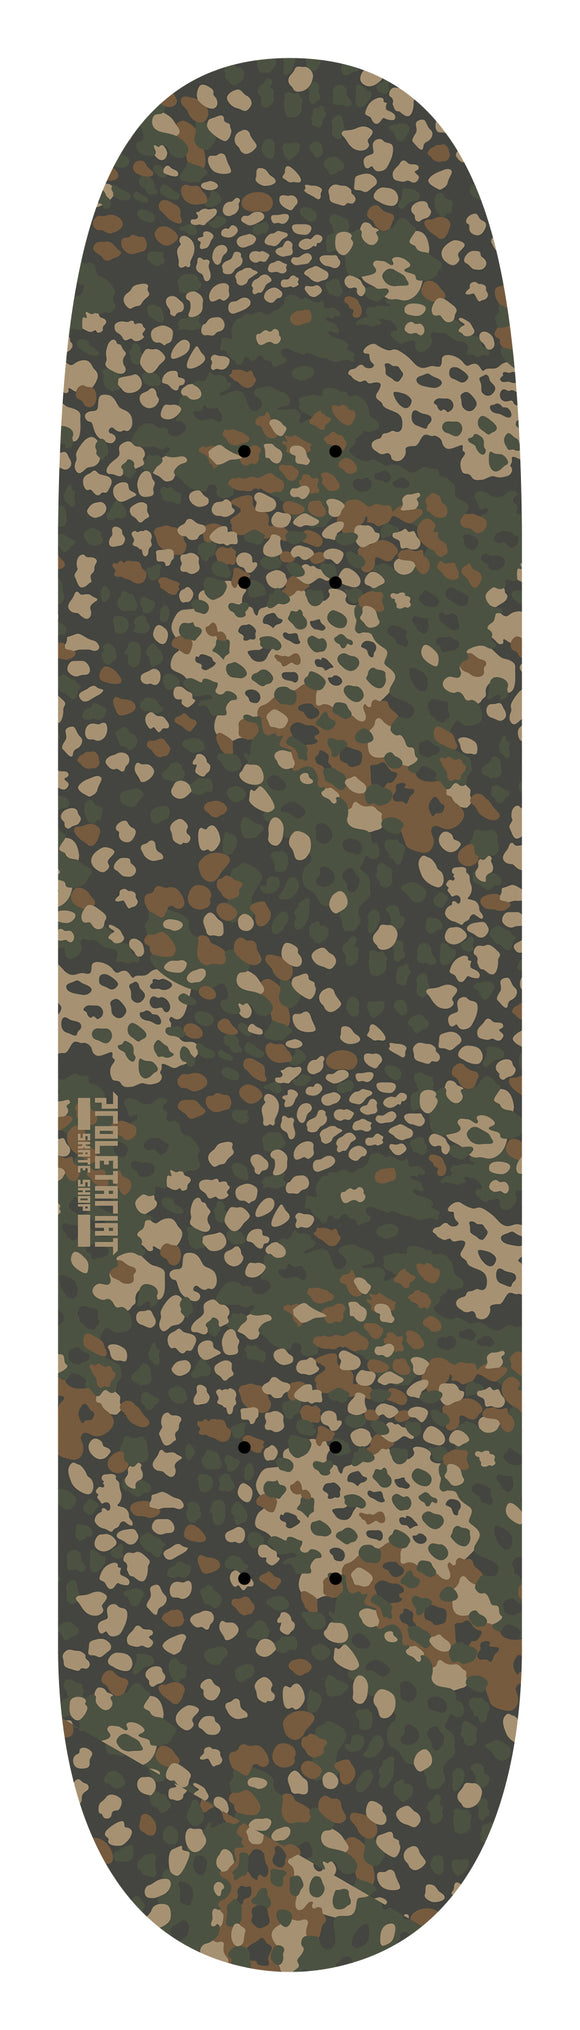 PROLETARIAT SKATE SHOP CAMO SKATEBOARD DECK